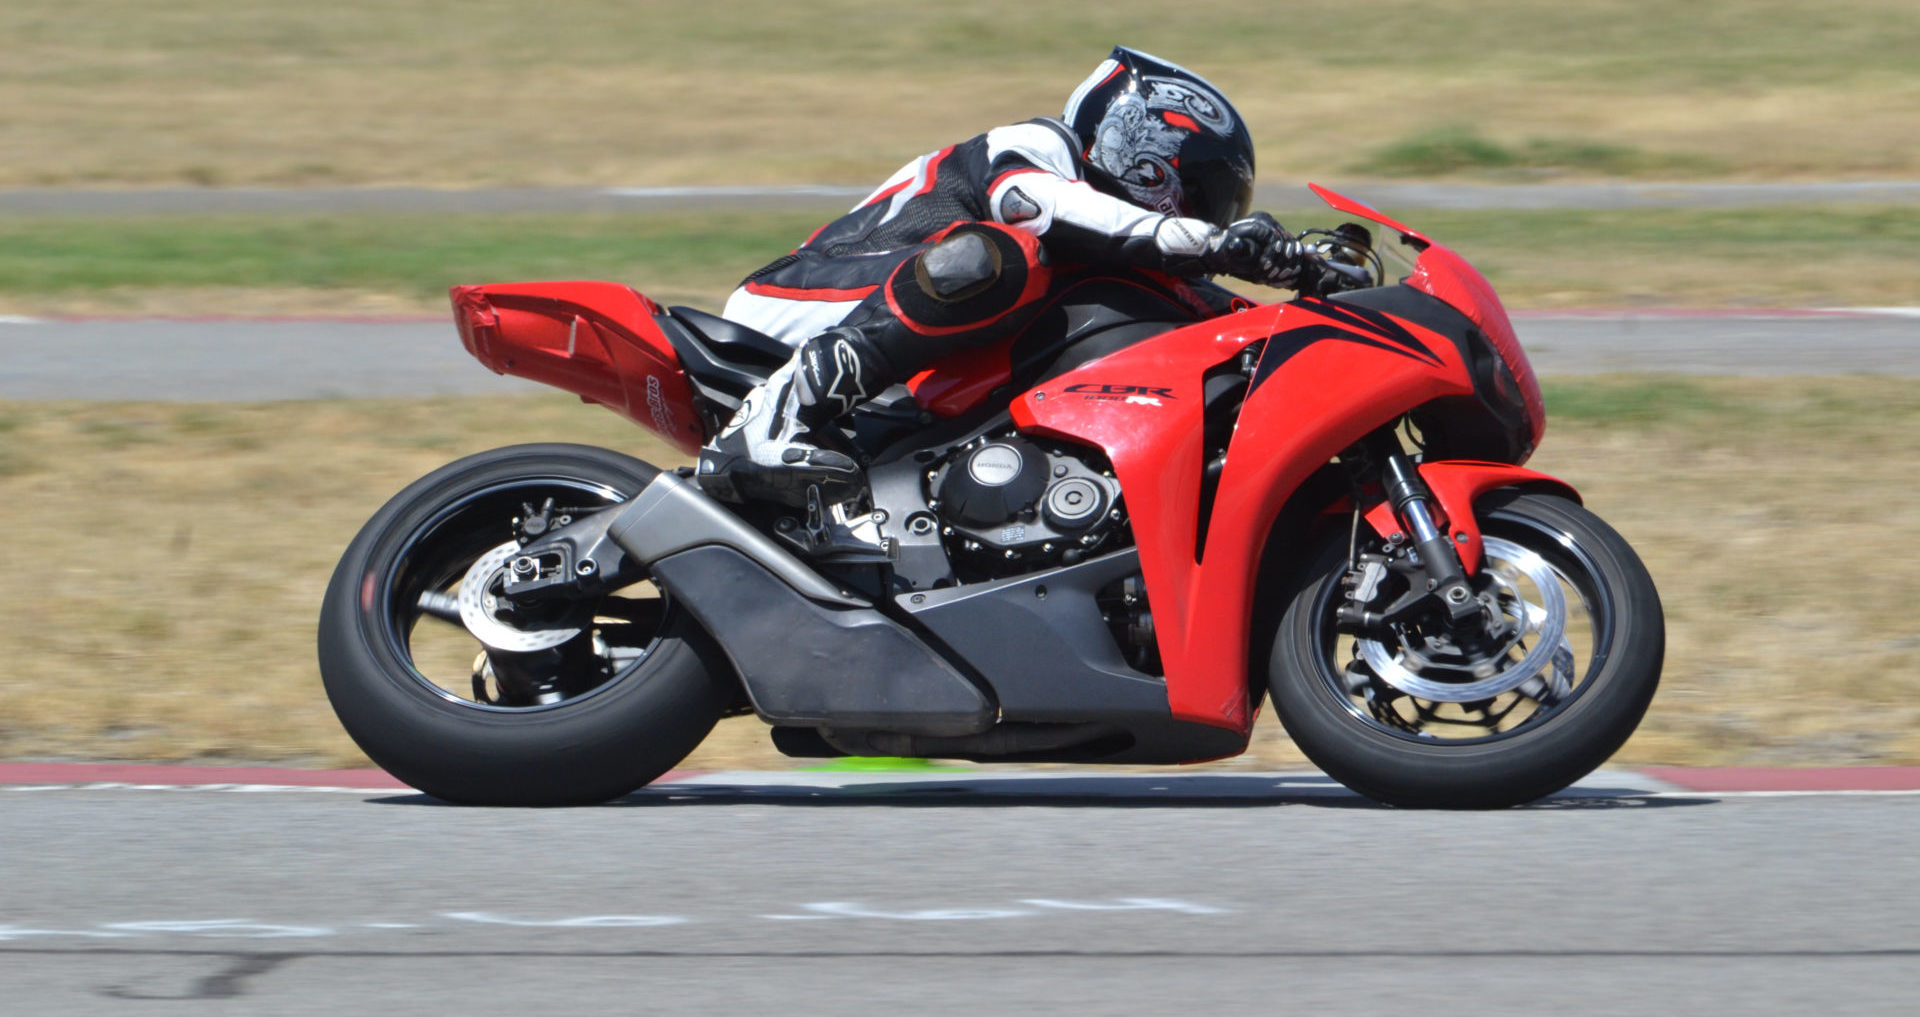 A rider participating in a track day at Auto Club Speedway, in Fontana, California. Photo by David Swarts.